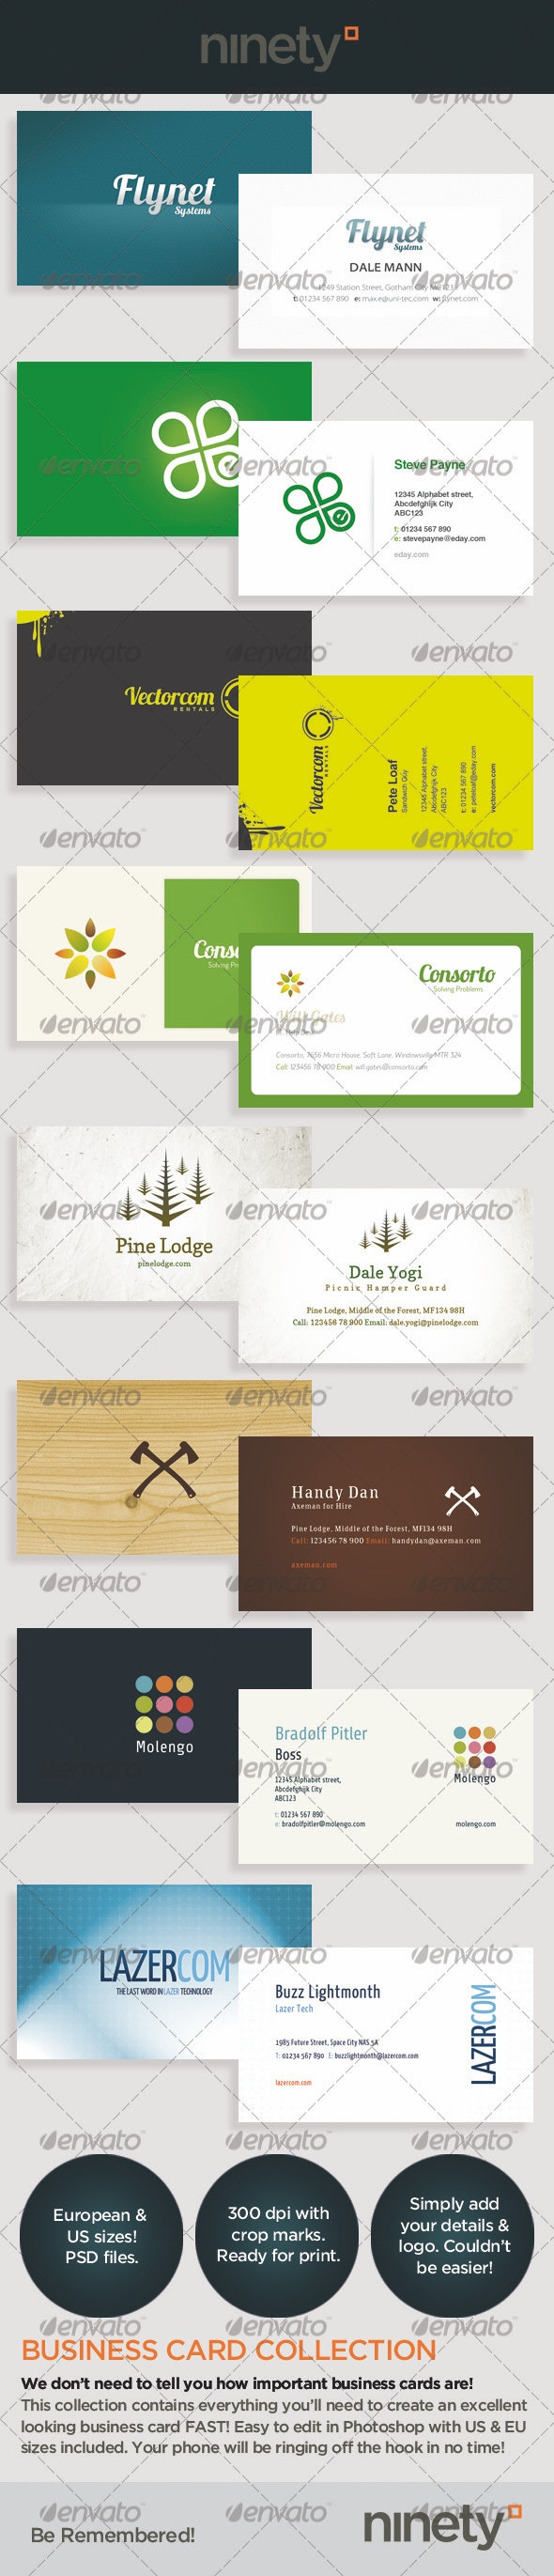 Business Card Collection - Corporate Business Cards